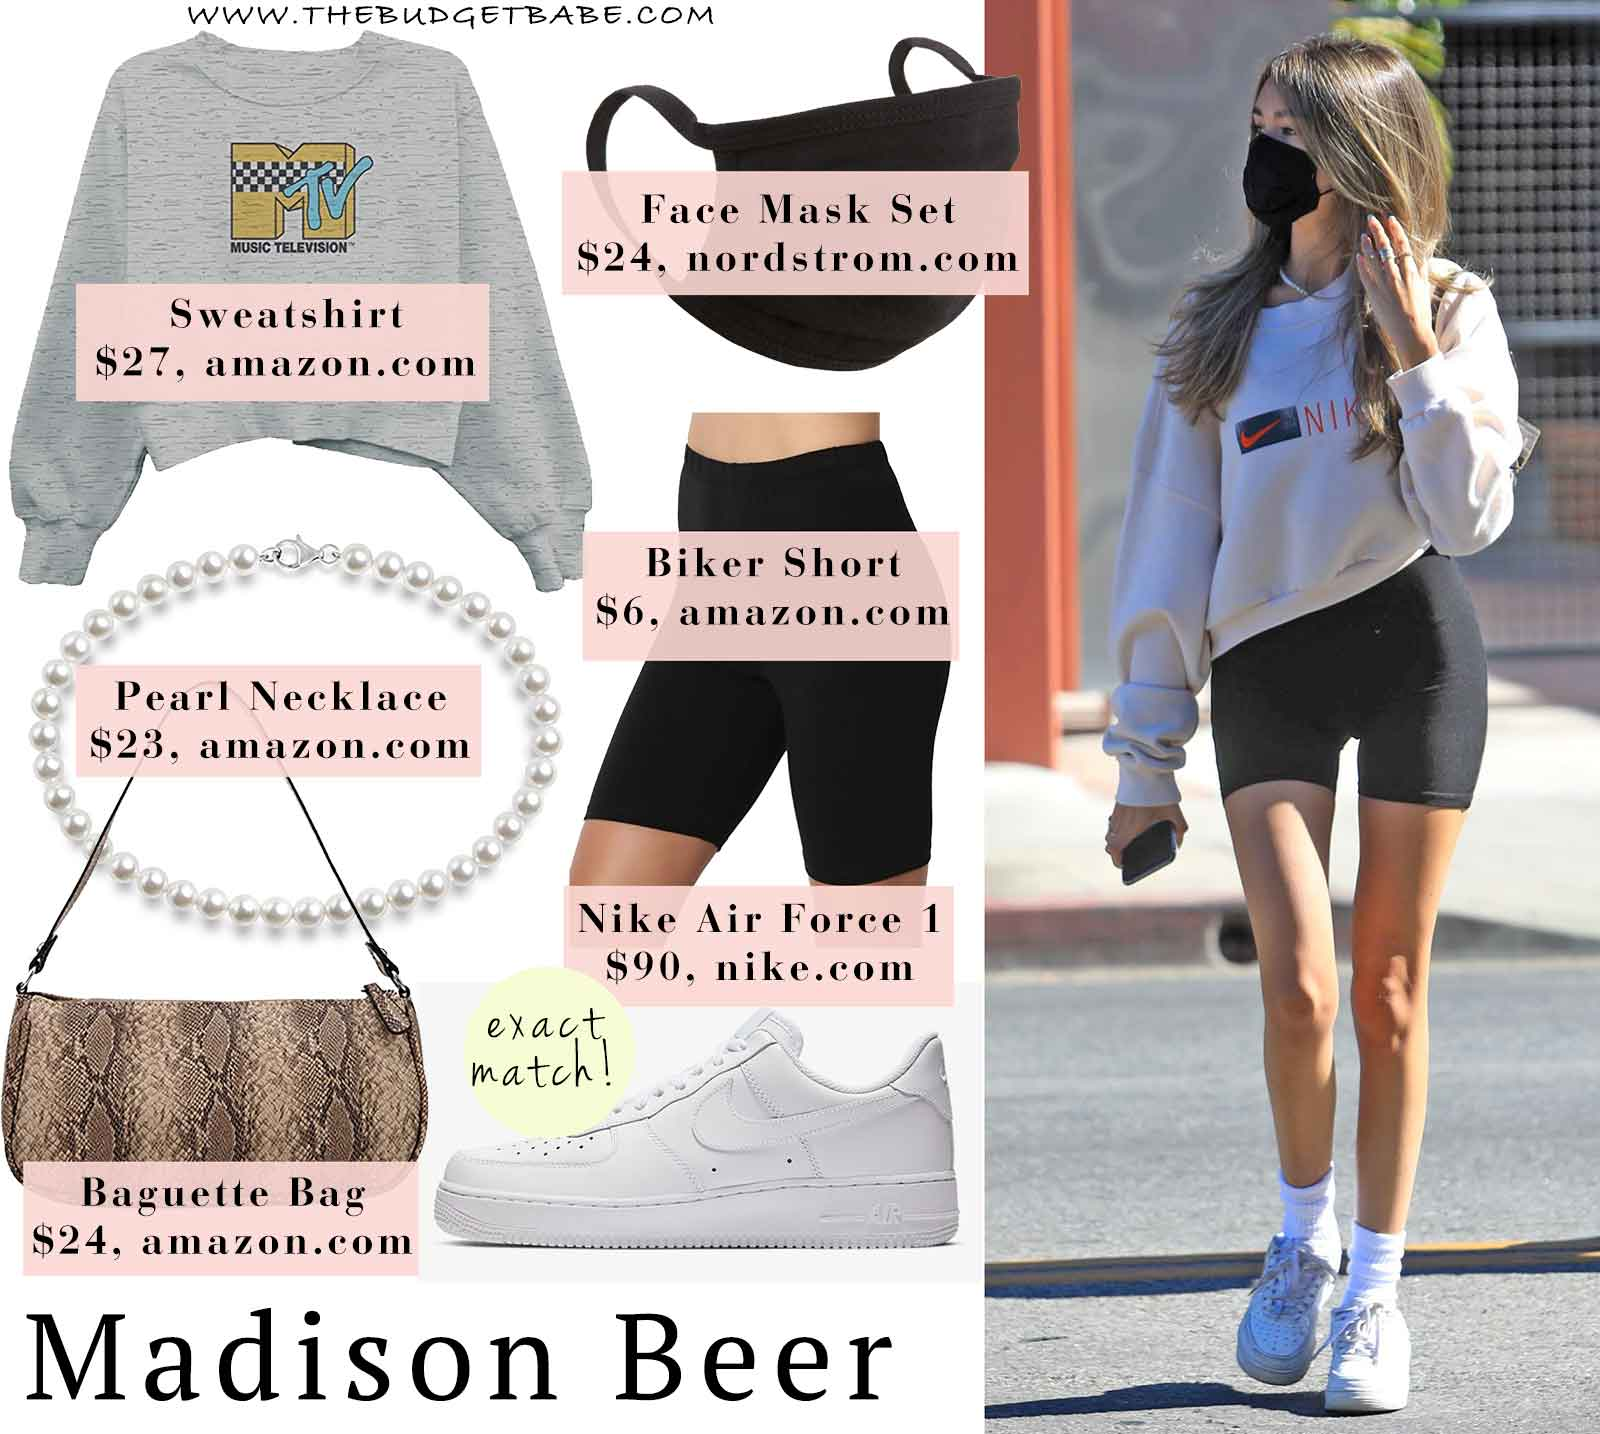 Madison Beer's Athleisure Look in Nike